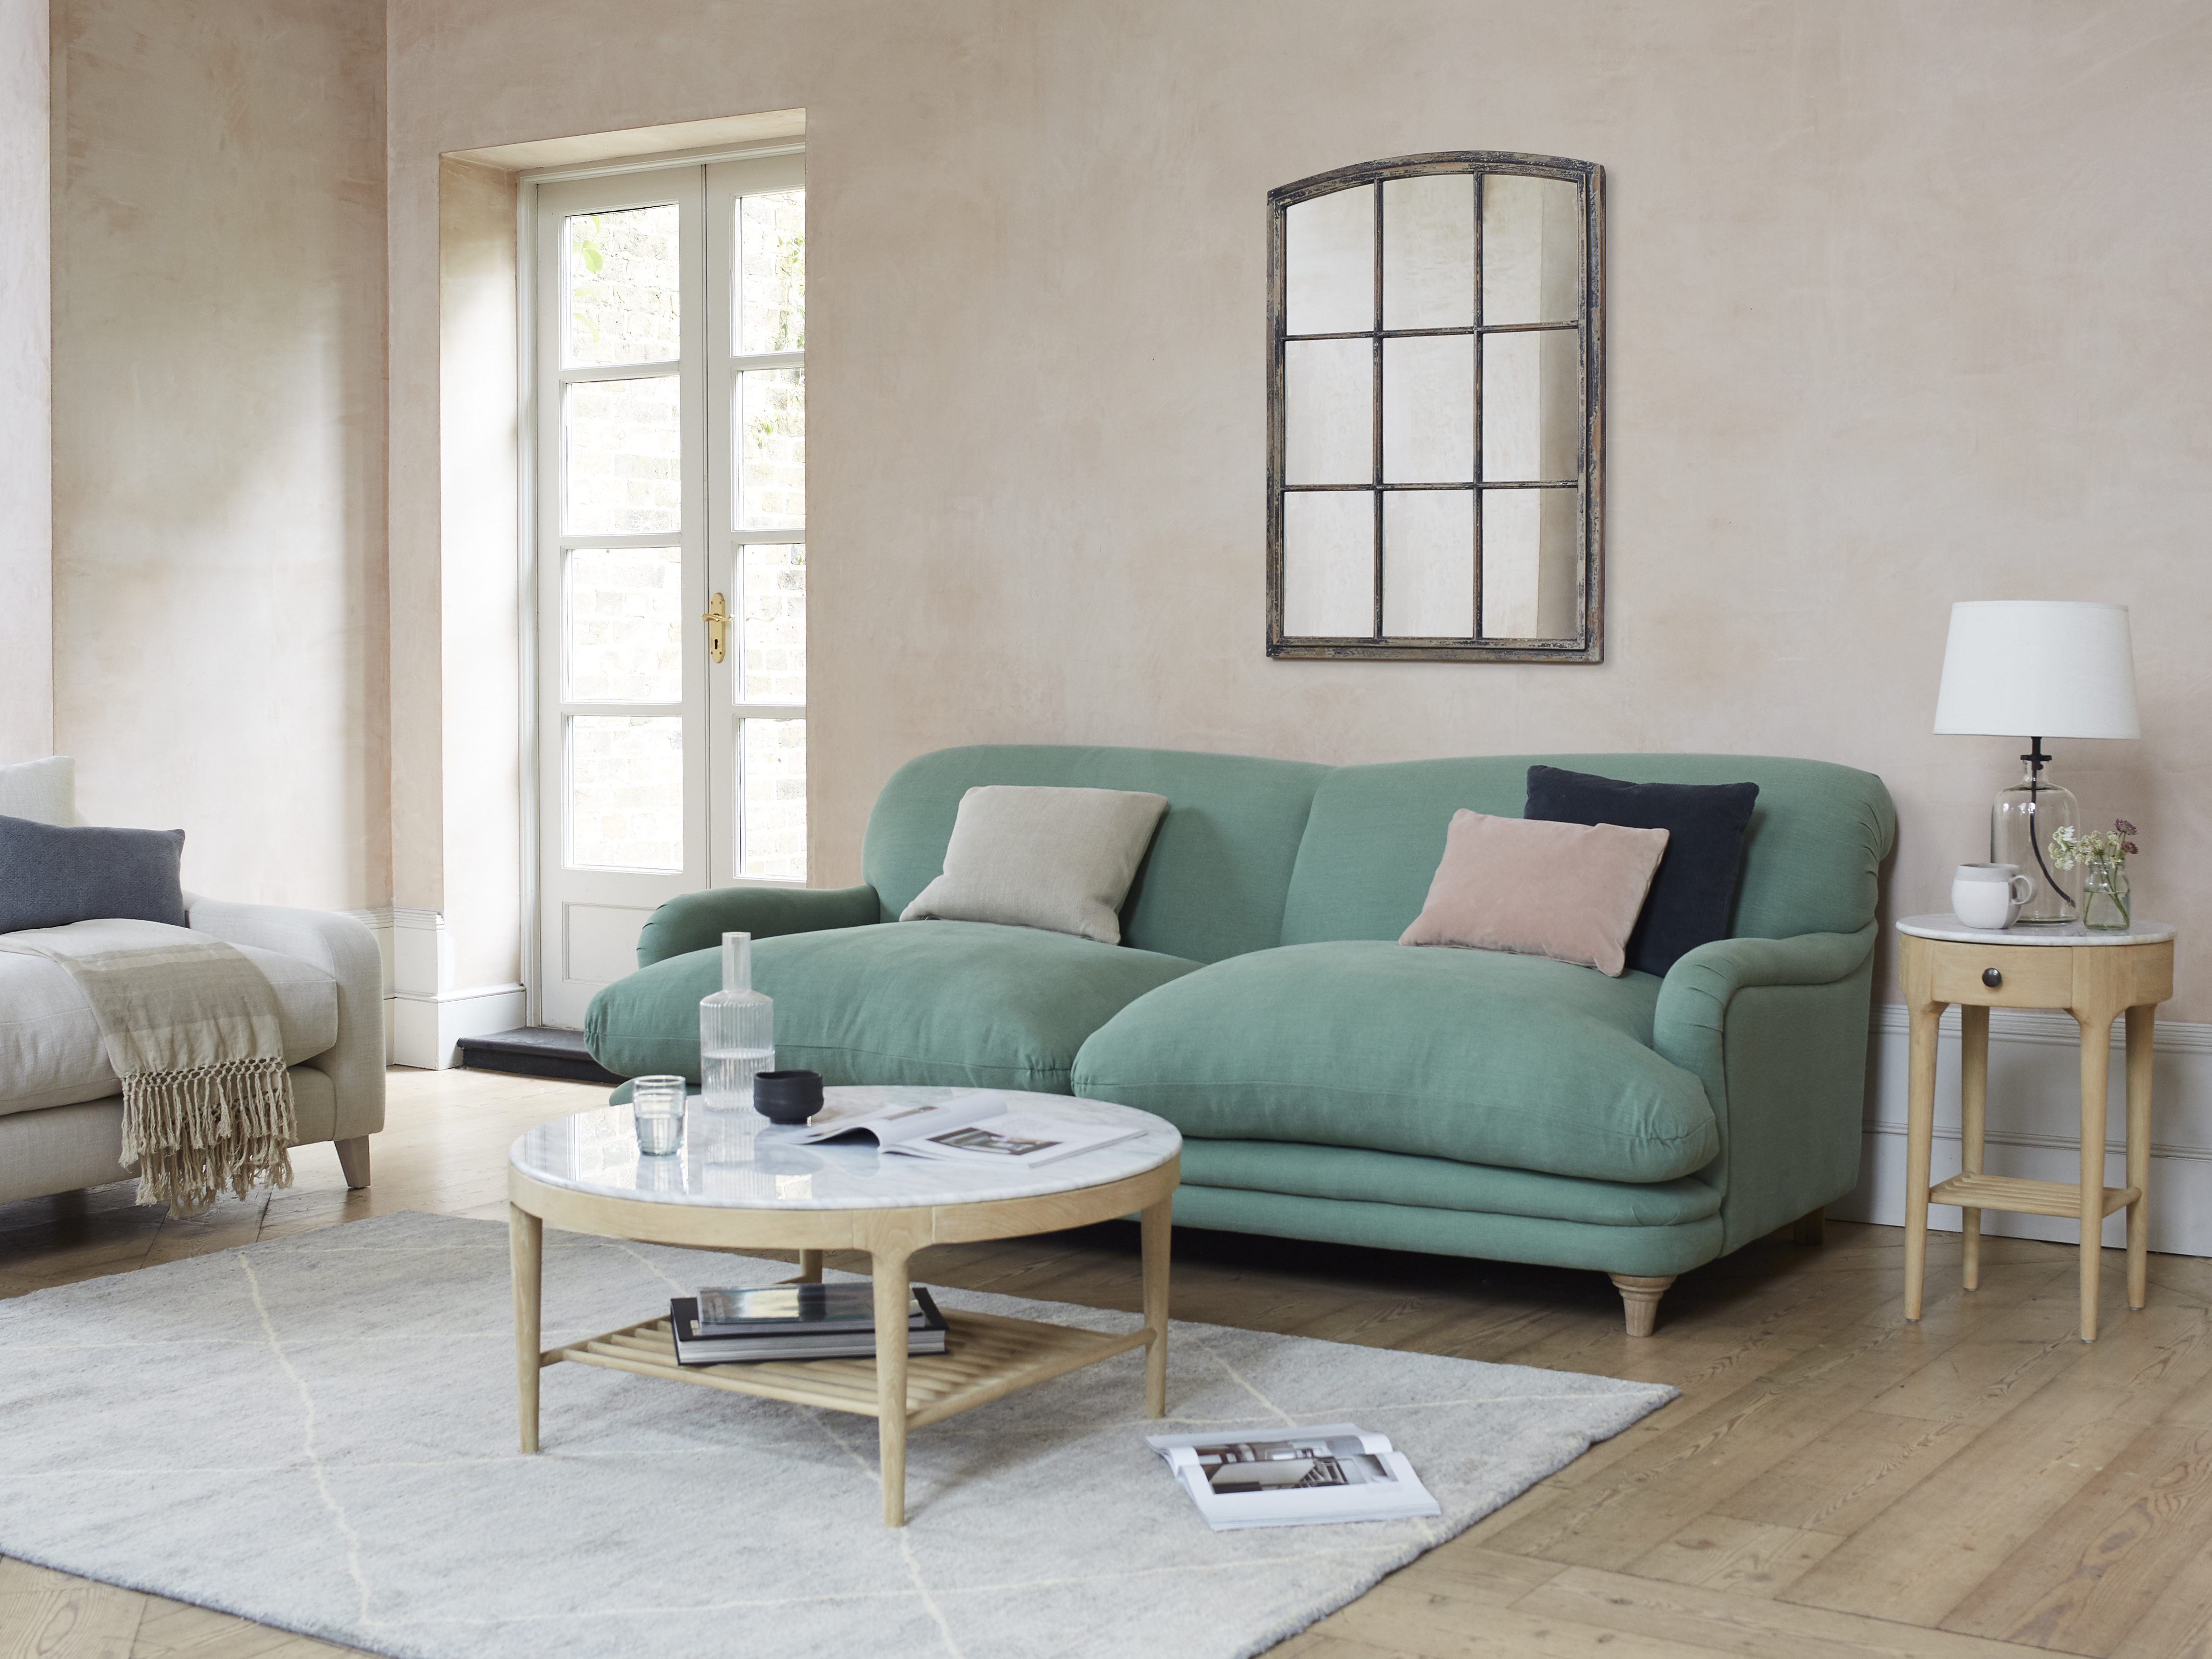 Pudding sofa in thyme green vintage linen, £1,395, www.loaf.com